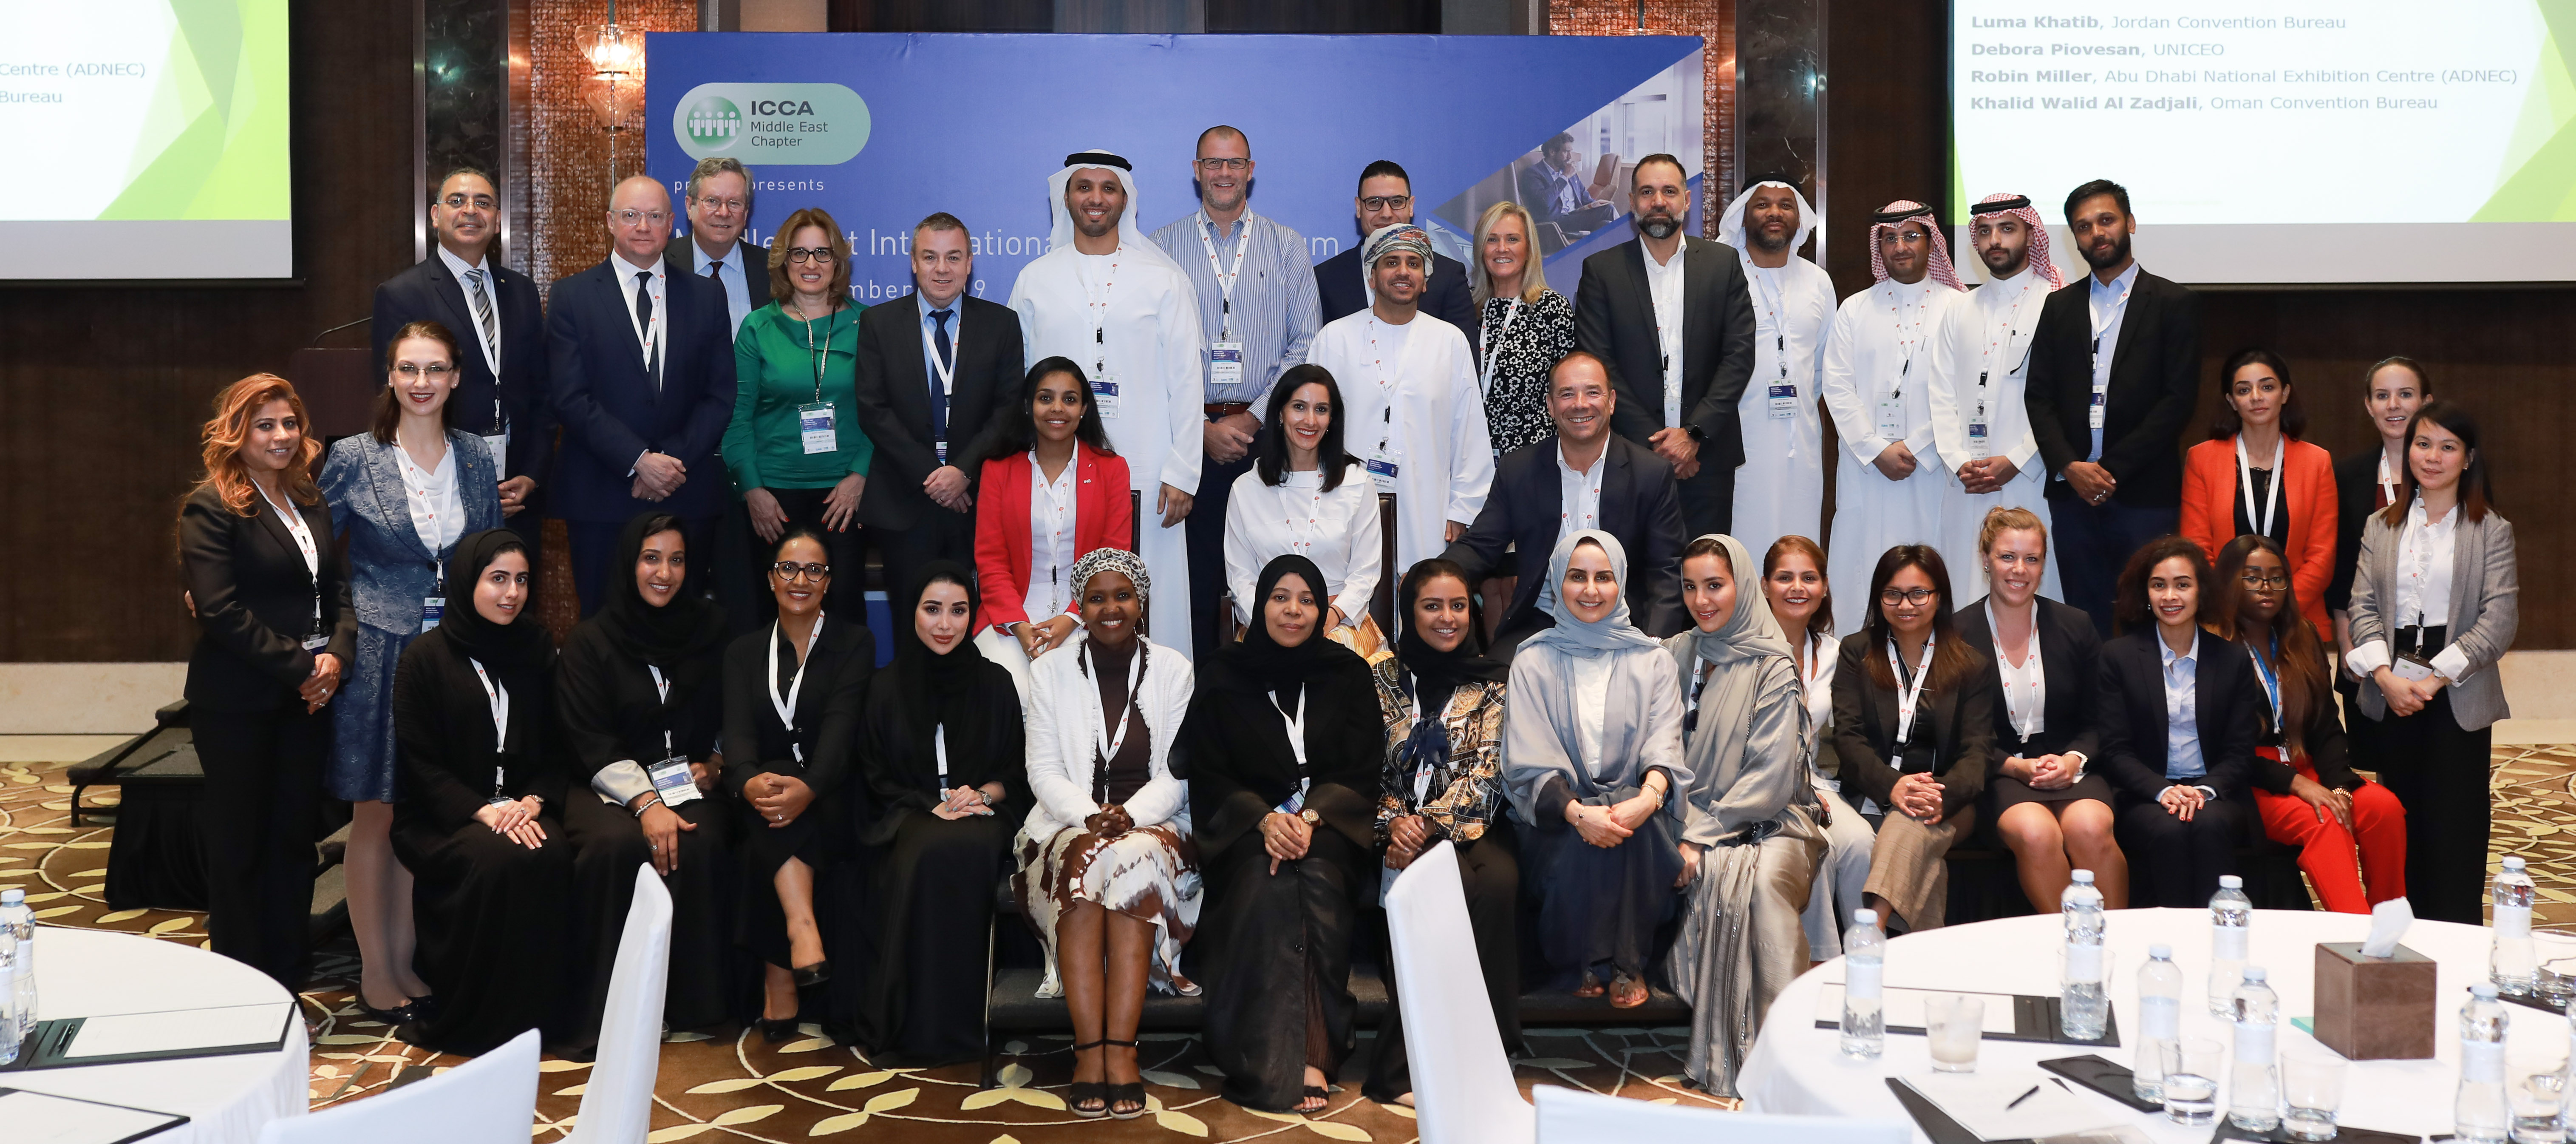 In collaboration with the International Congress and Convention Association (ICCA), the Abu Dhabi Convention Bureau hosted the fourth edition of the Middle East International Forum (MEIMF) from 18-19 September 2019.